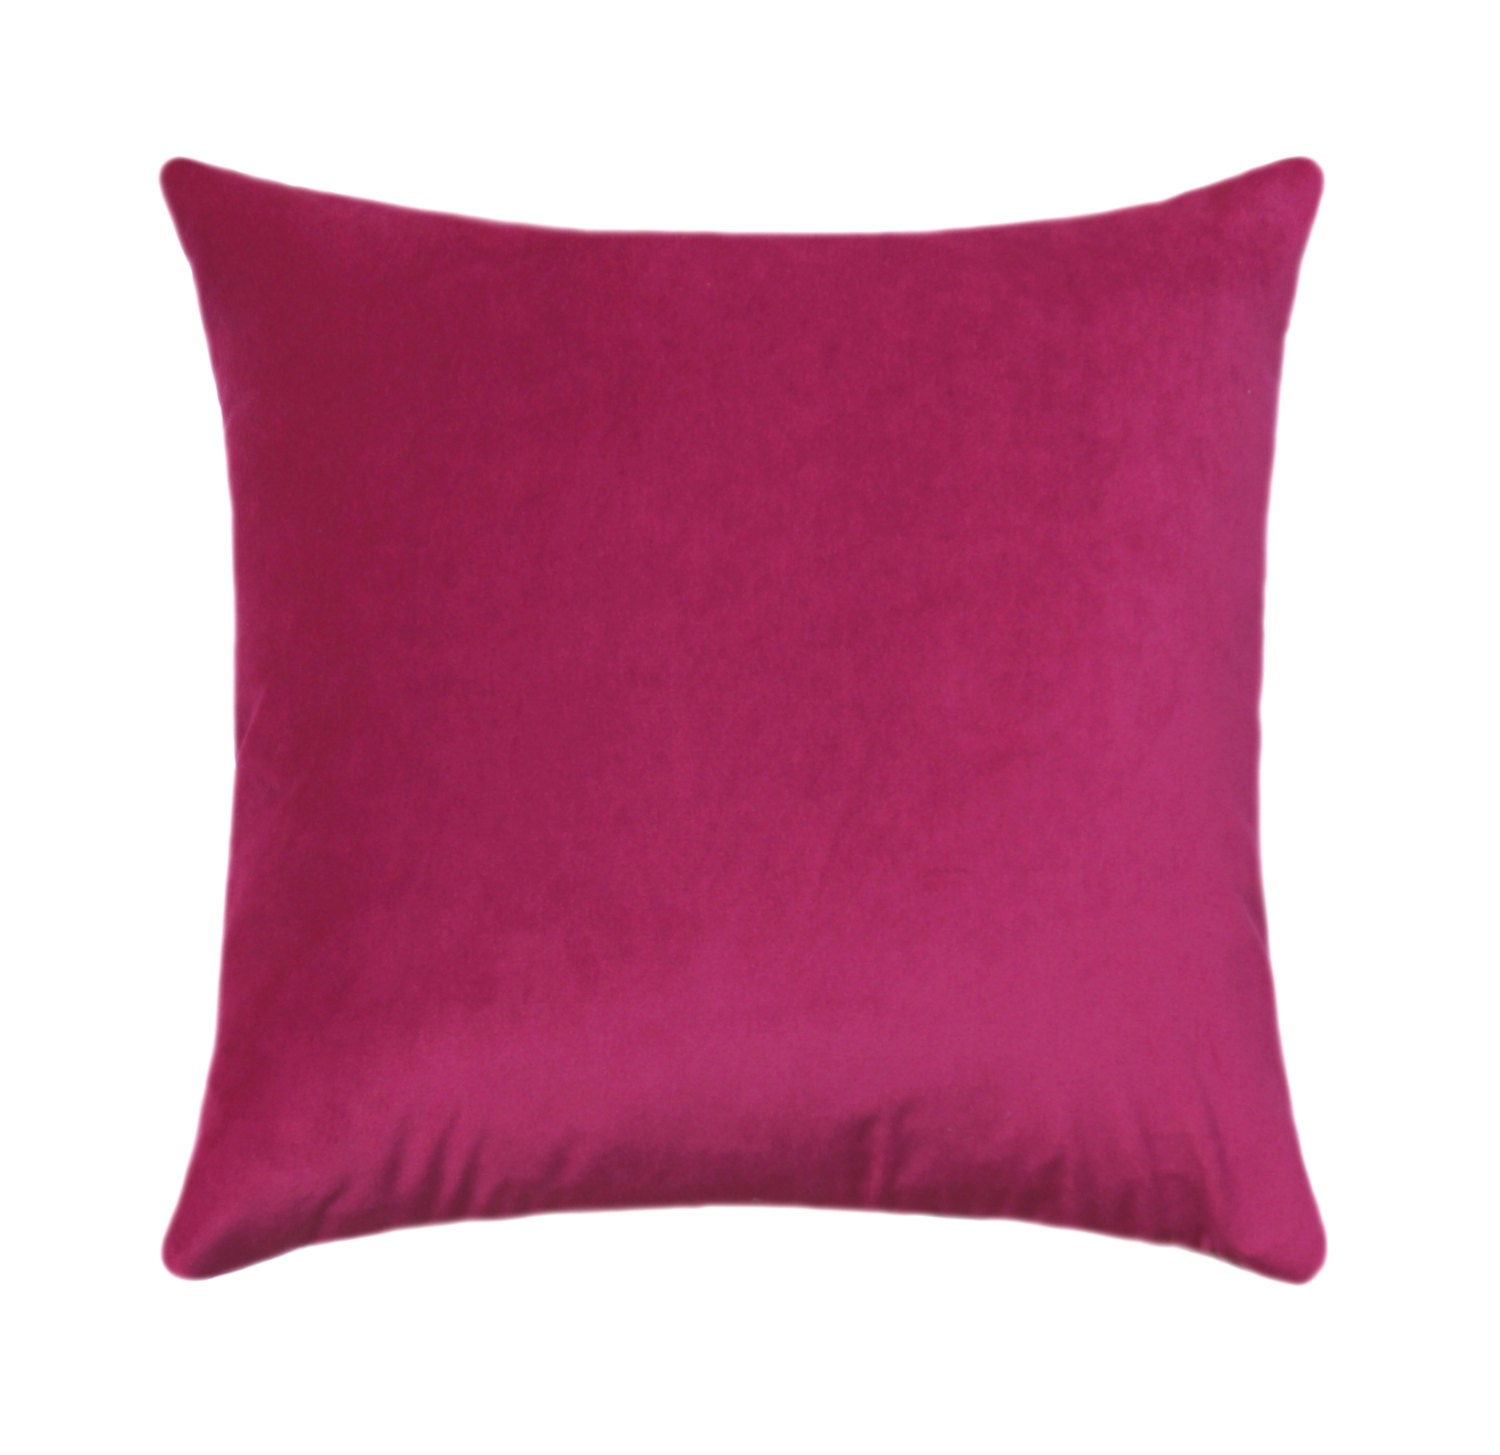 Hot Pink Pillow Cover Velvet Throw Pillow Magenta Pillow